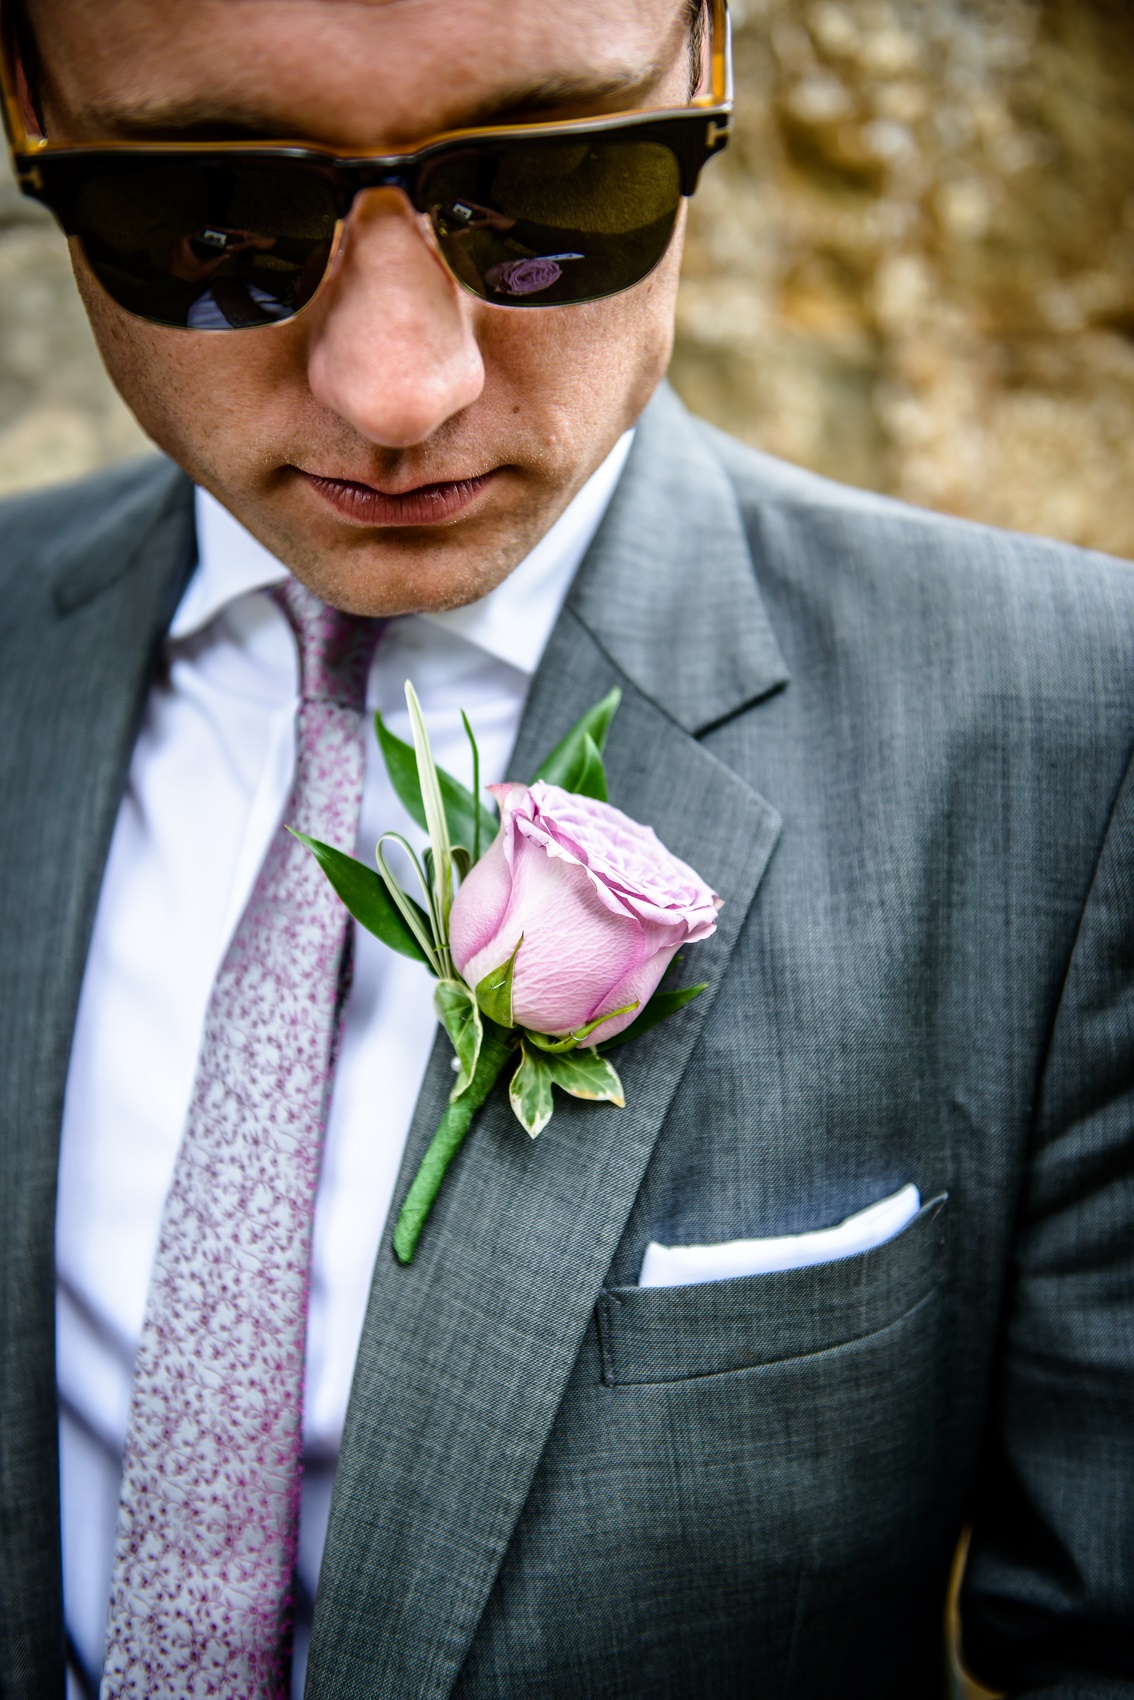 A guide to wedding button holes and corsages by Warwickshire Photographer Chris Fossey Photography